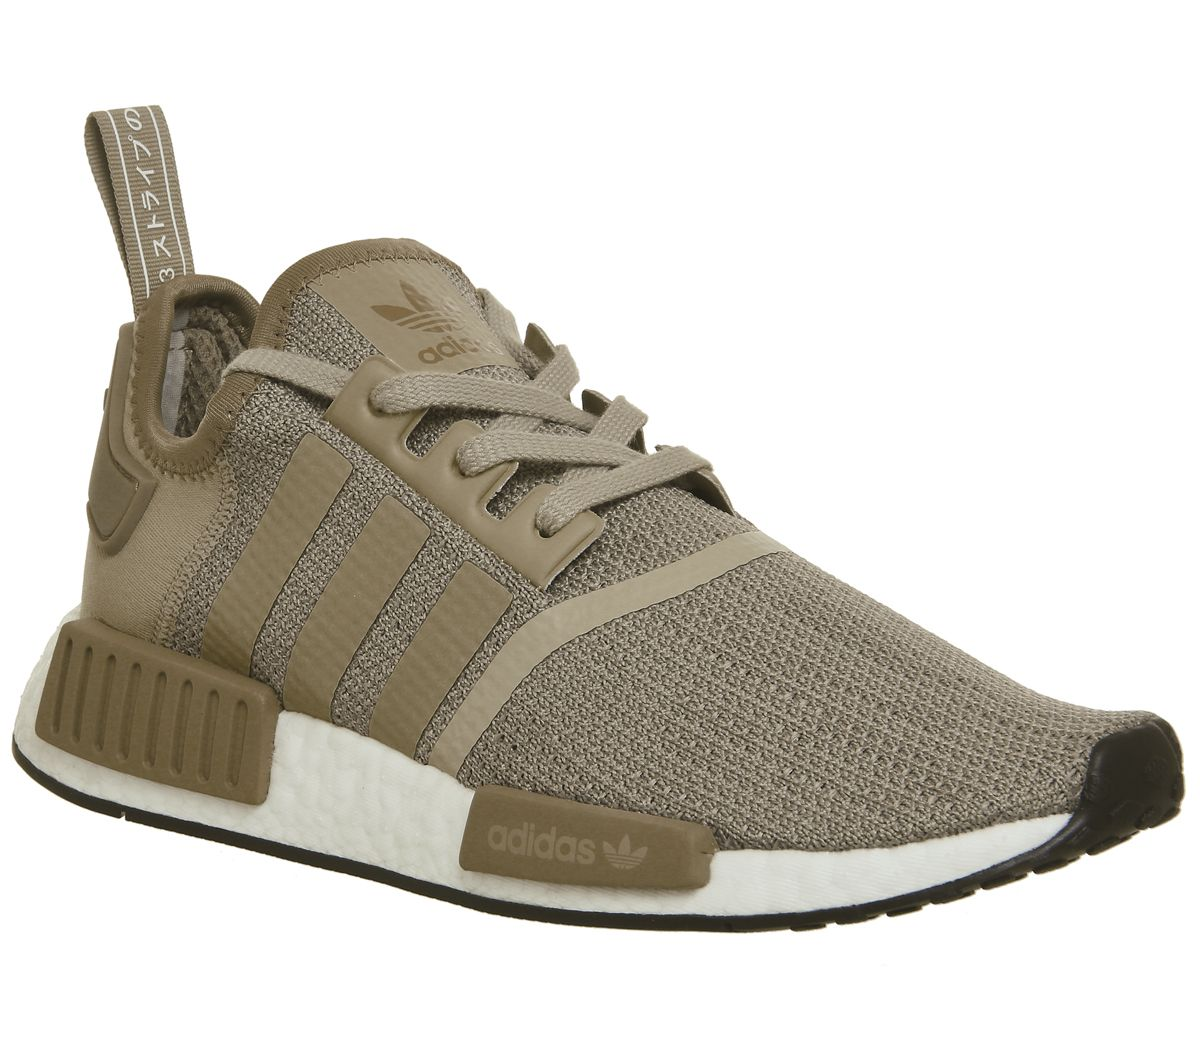 f61945c0453a Adidas Nmd R1 Trainers Raw Gold Cardboard White - His trainers